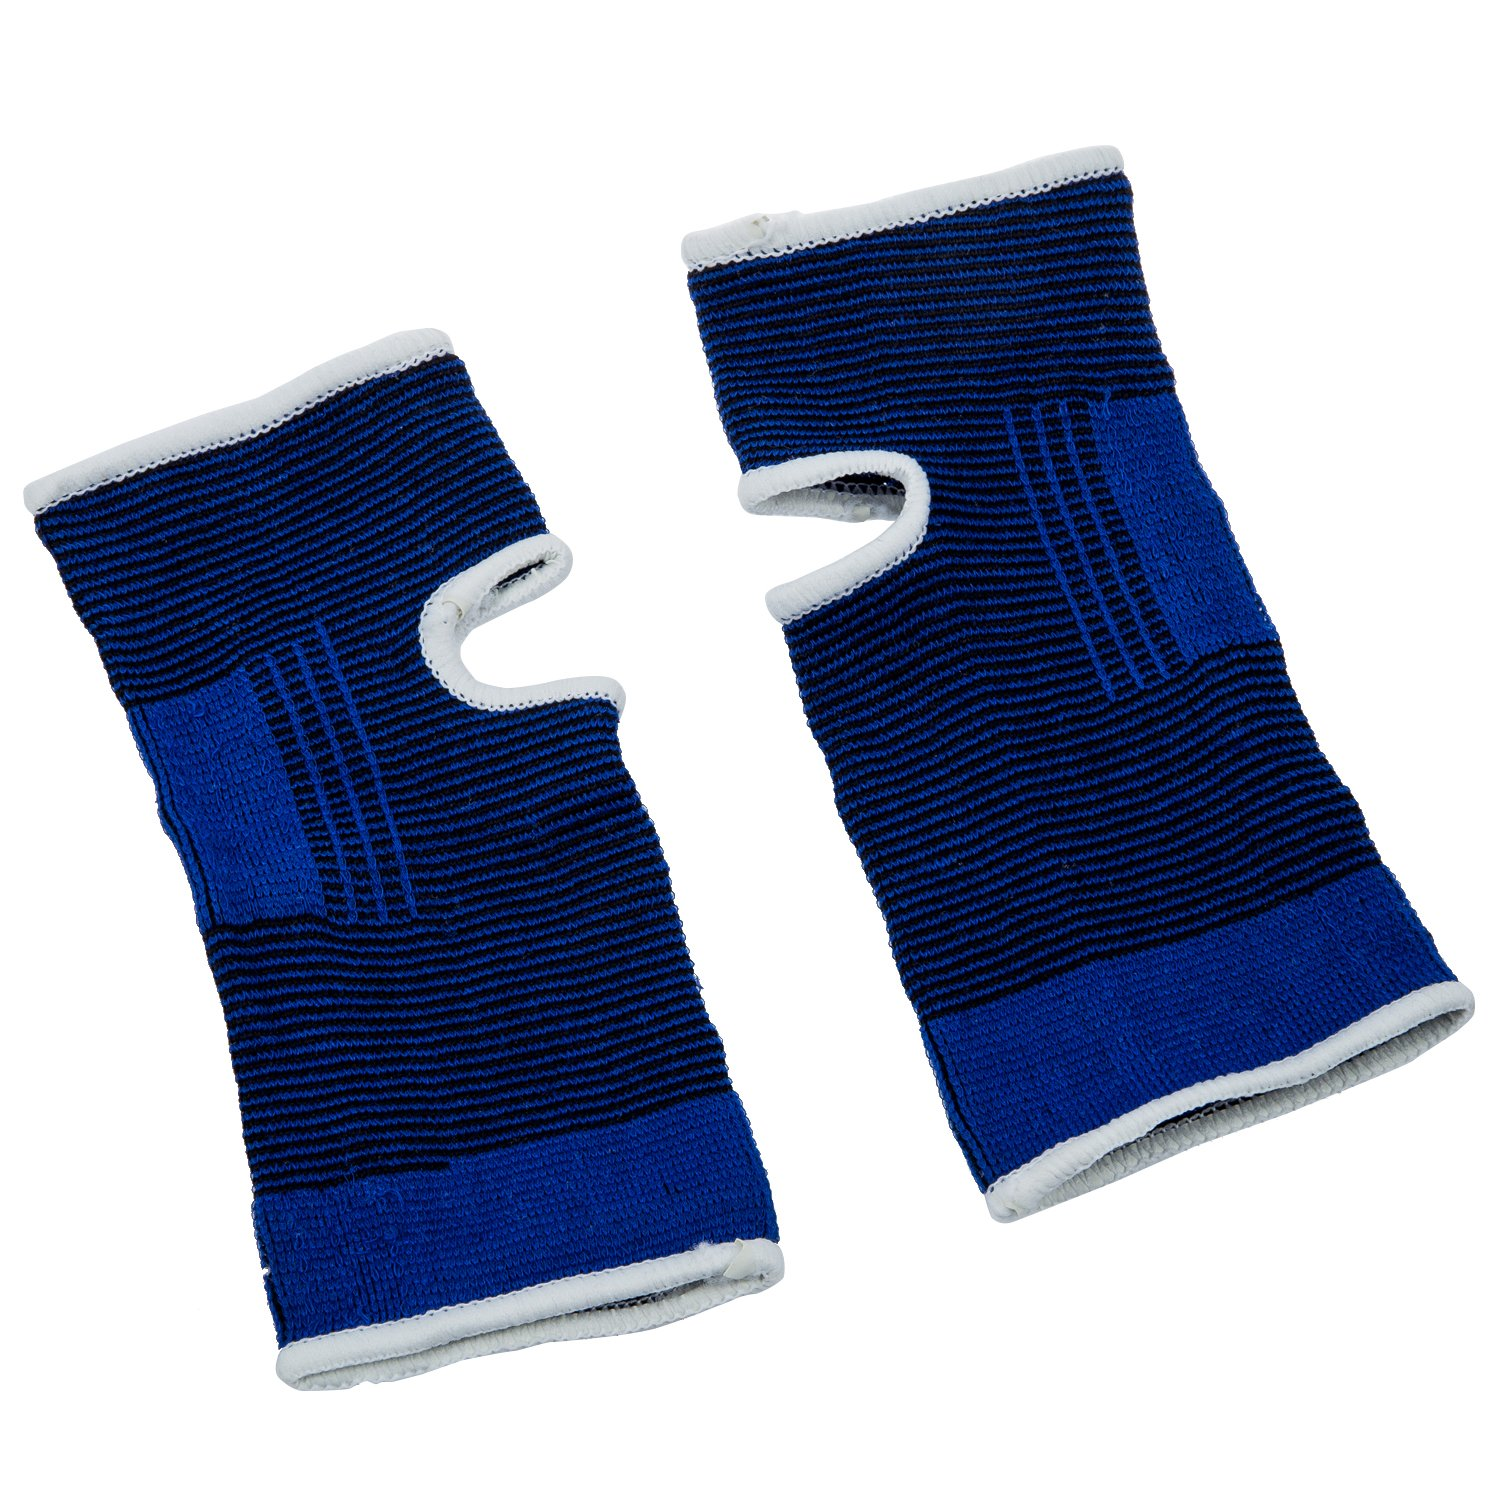 SODIAL(R) Ankle Foot Support Elastic Protector Brace Sports Socks